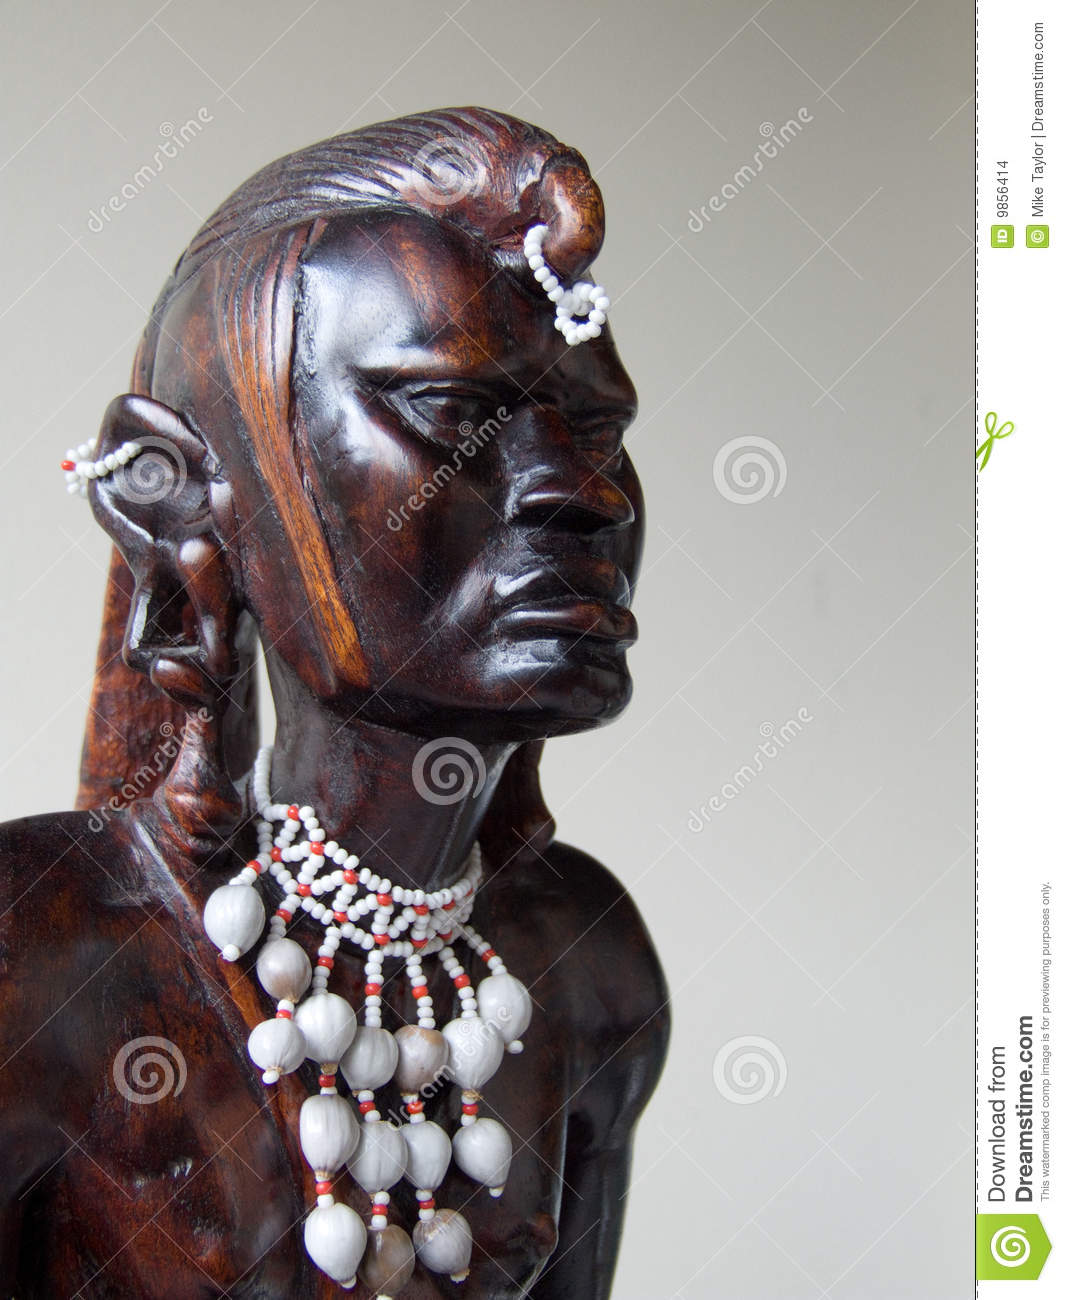 African Wood Carving Stock Photo Image Of Kenyan African